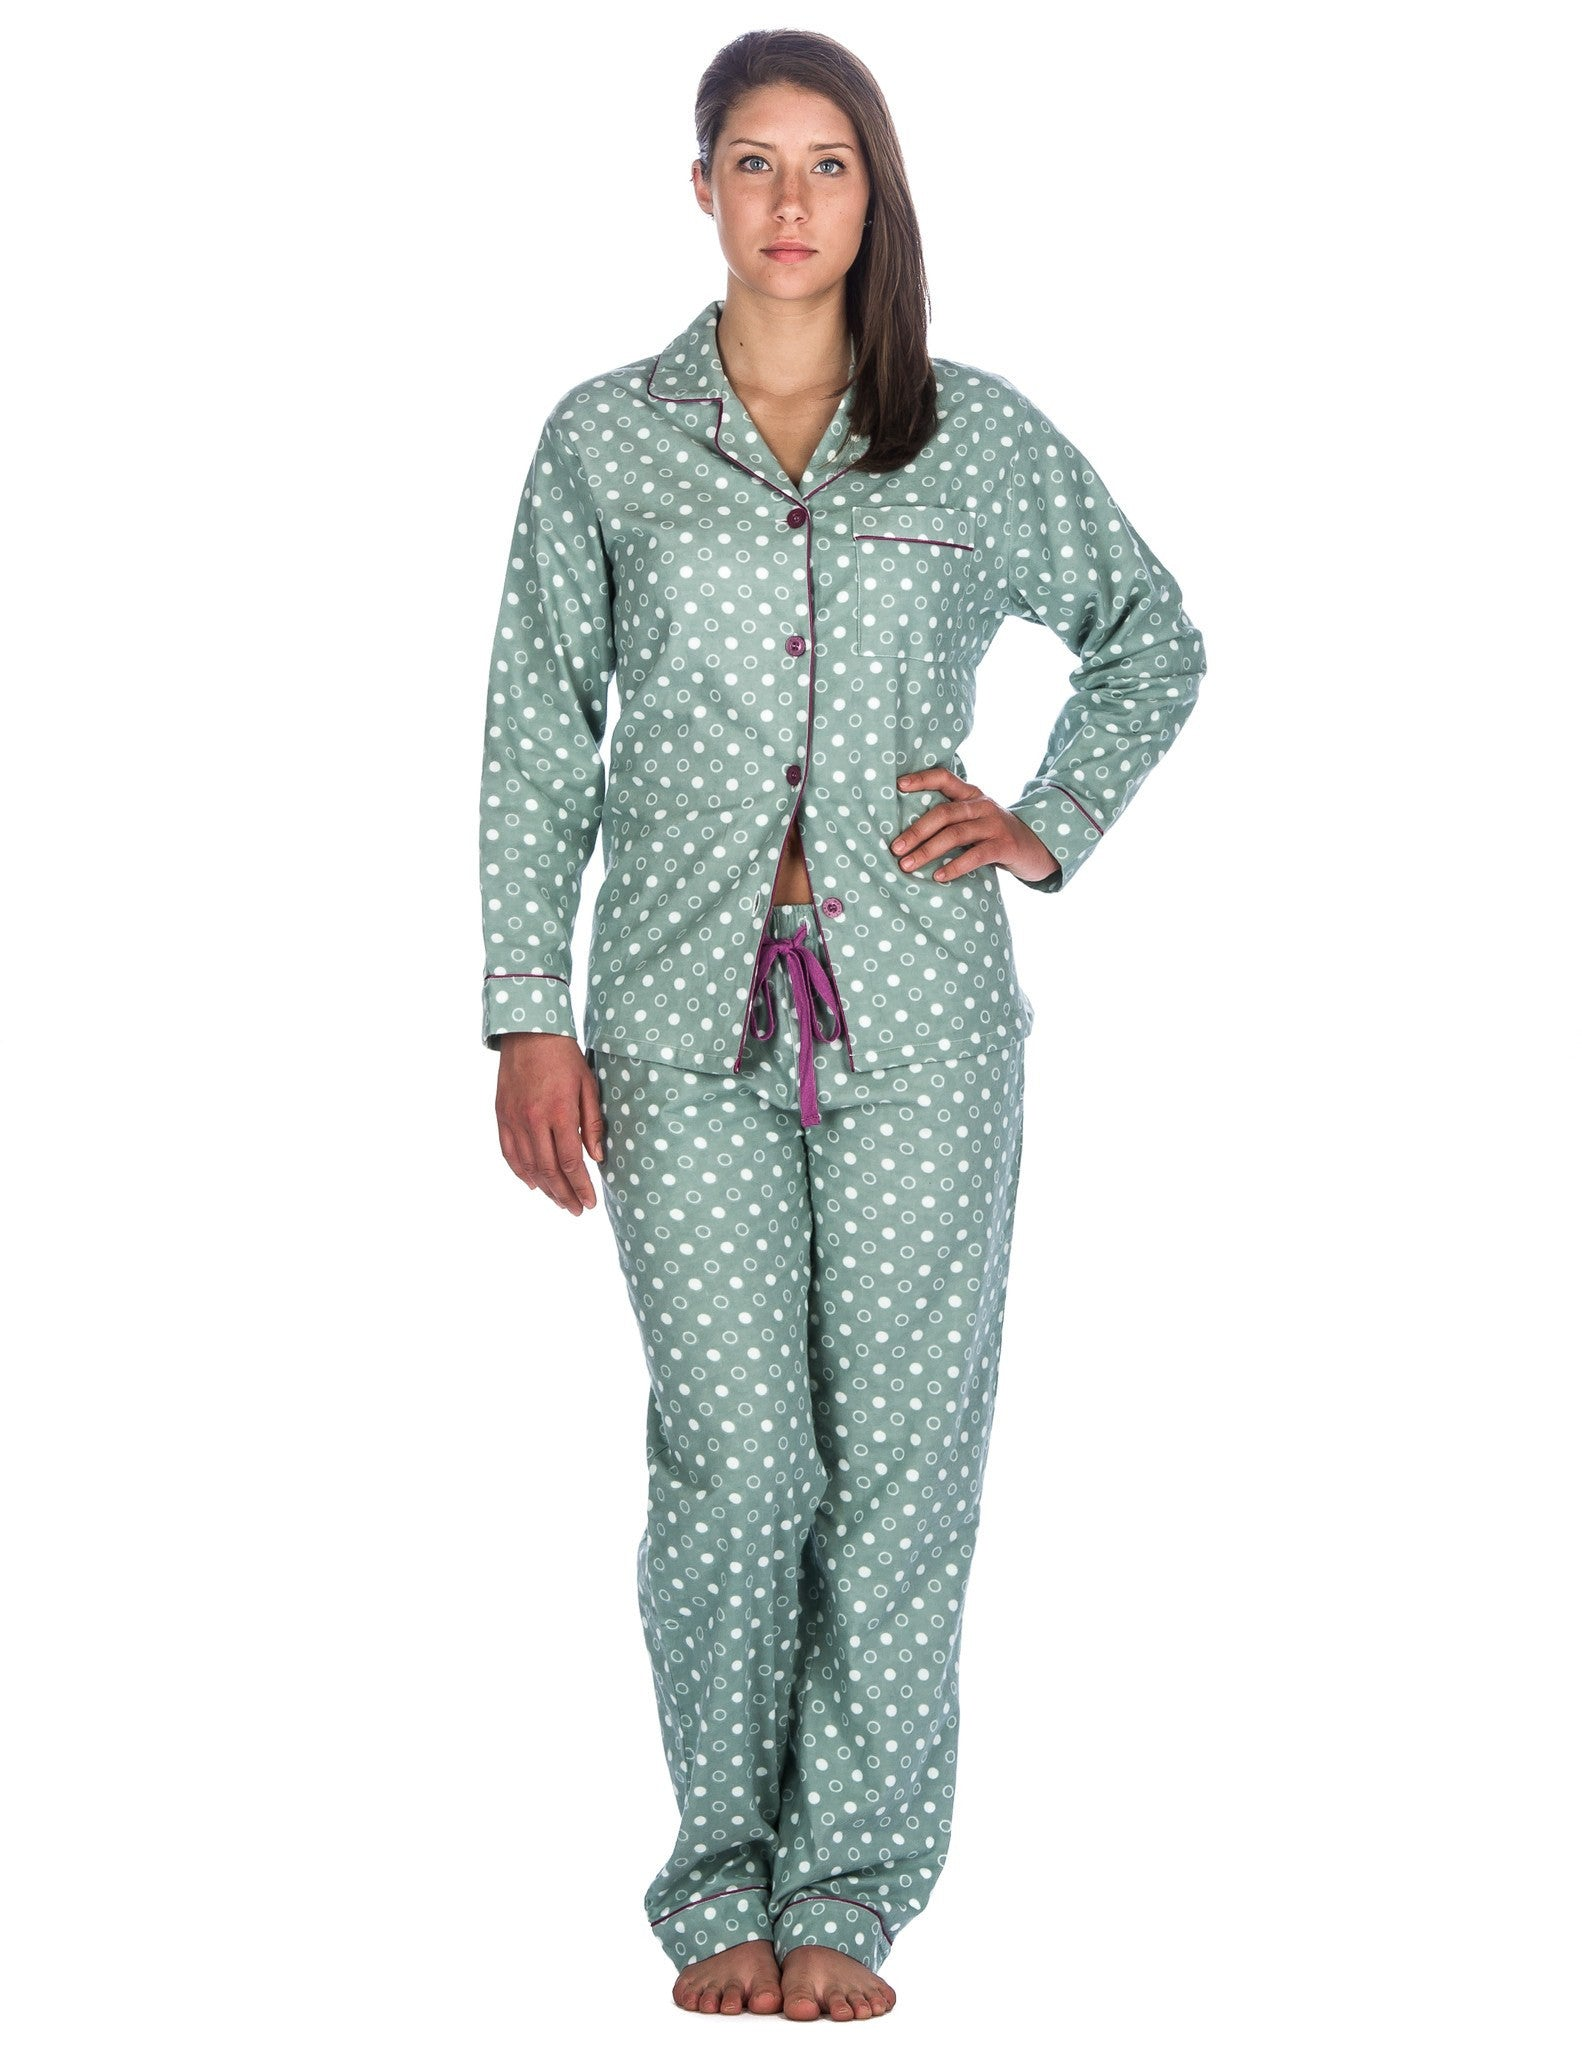 Womens 100% Cotton Flannel Pajama Sleepwear Set - Relaxed Fit